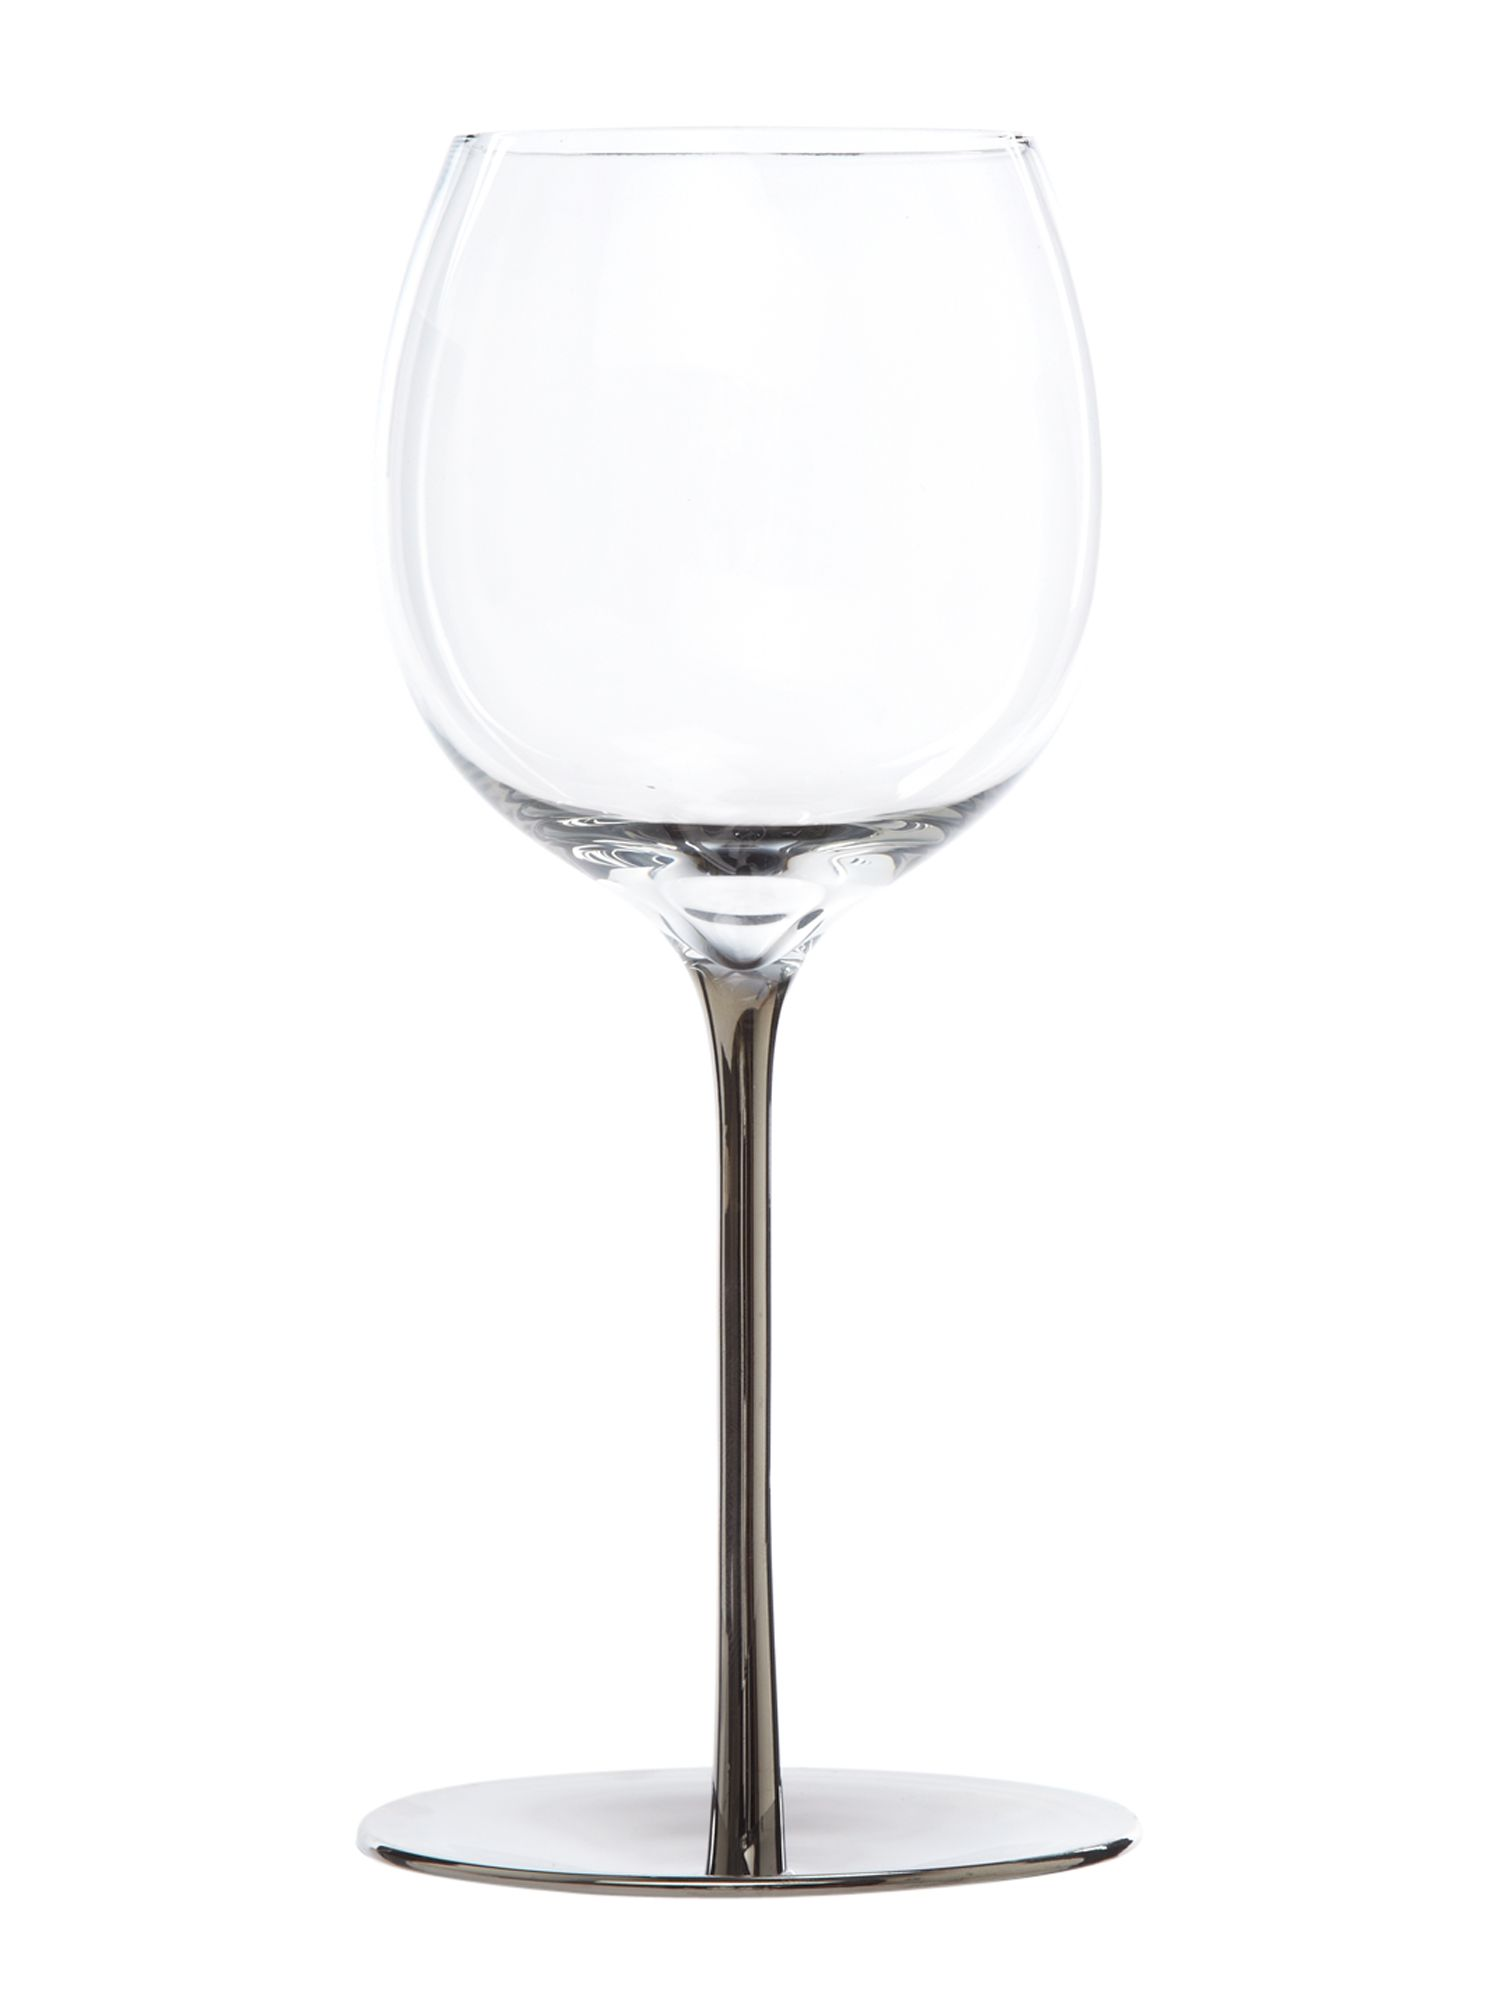 Wobble wine glass